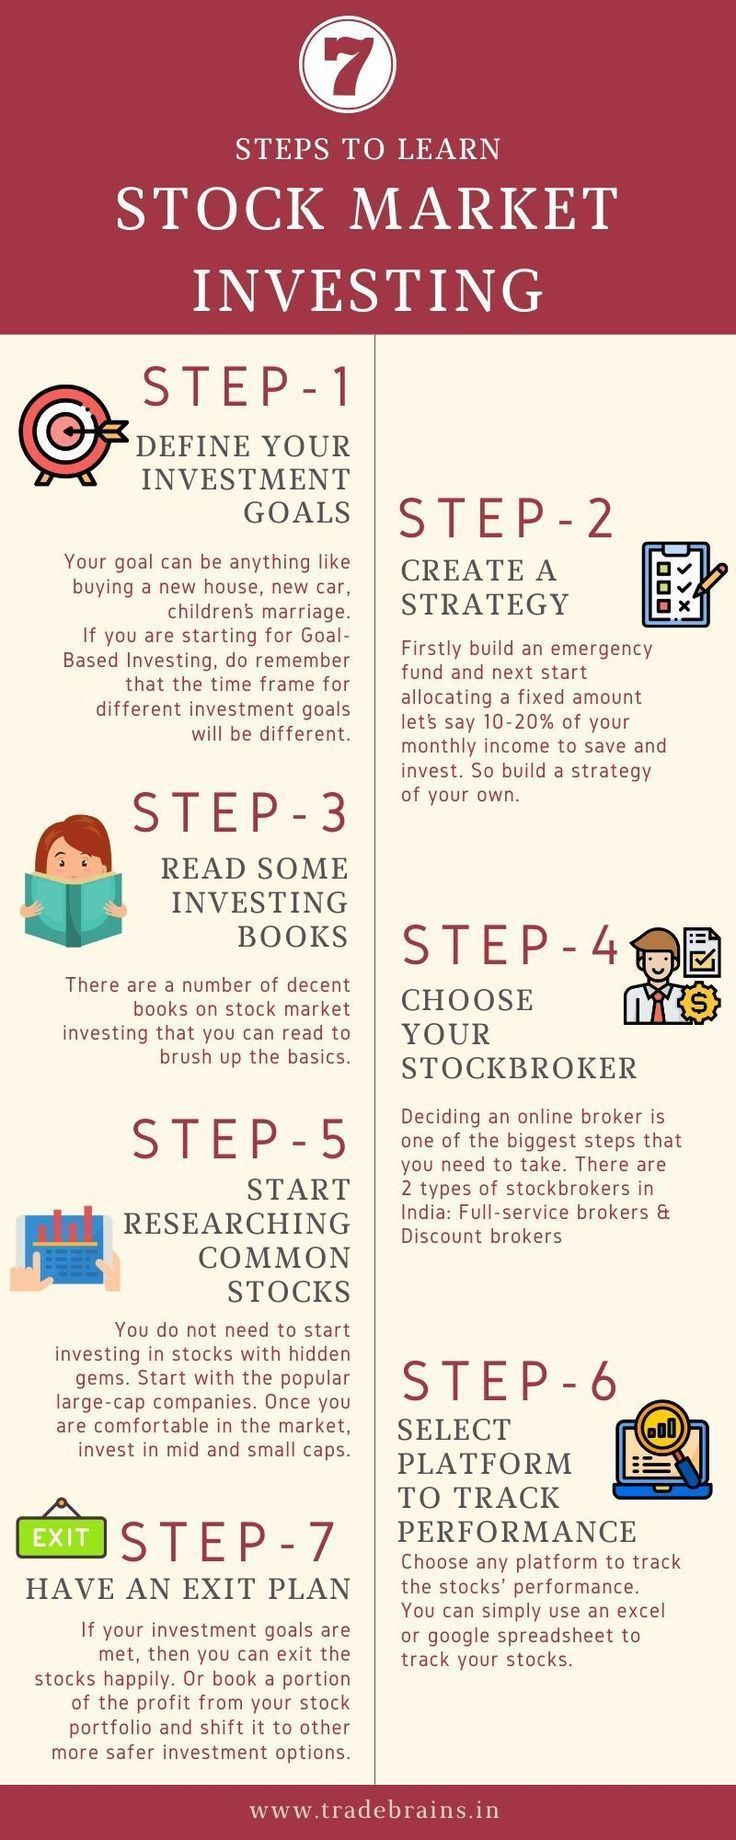 How To Invest In Share Market A Complete Beginner S Guide In 2020 Investing Stock Market Investing Stock Market